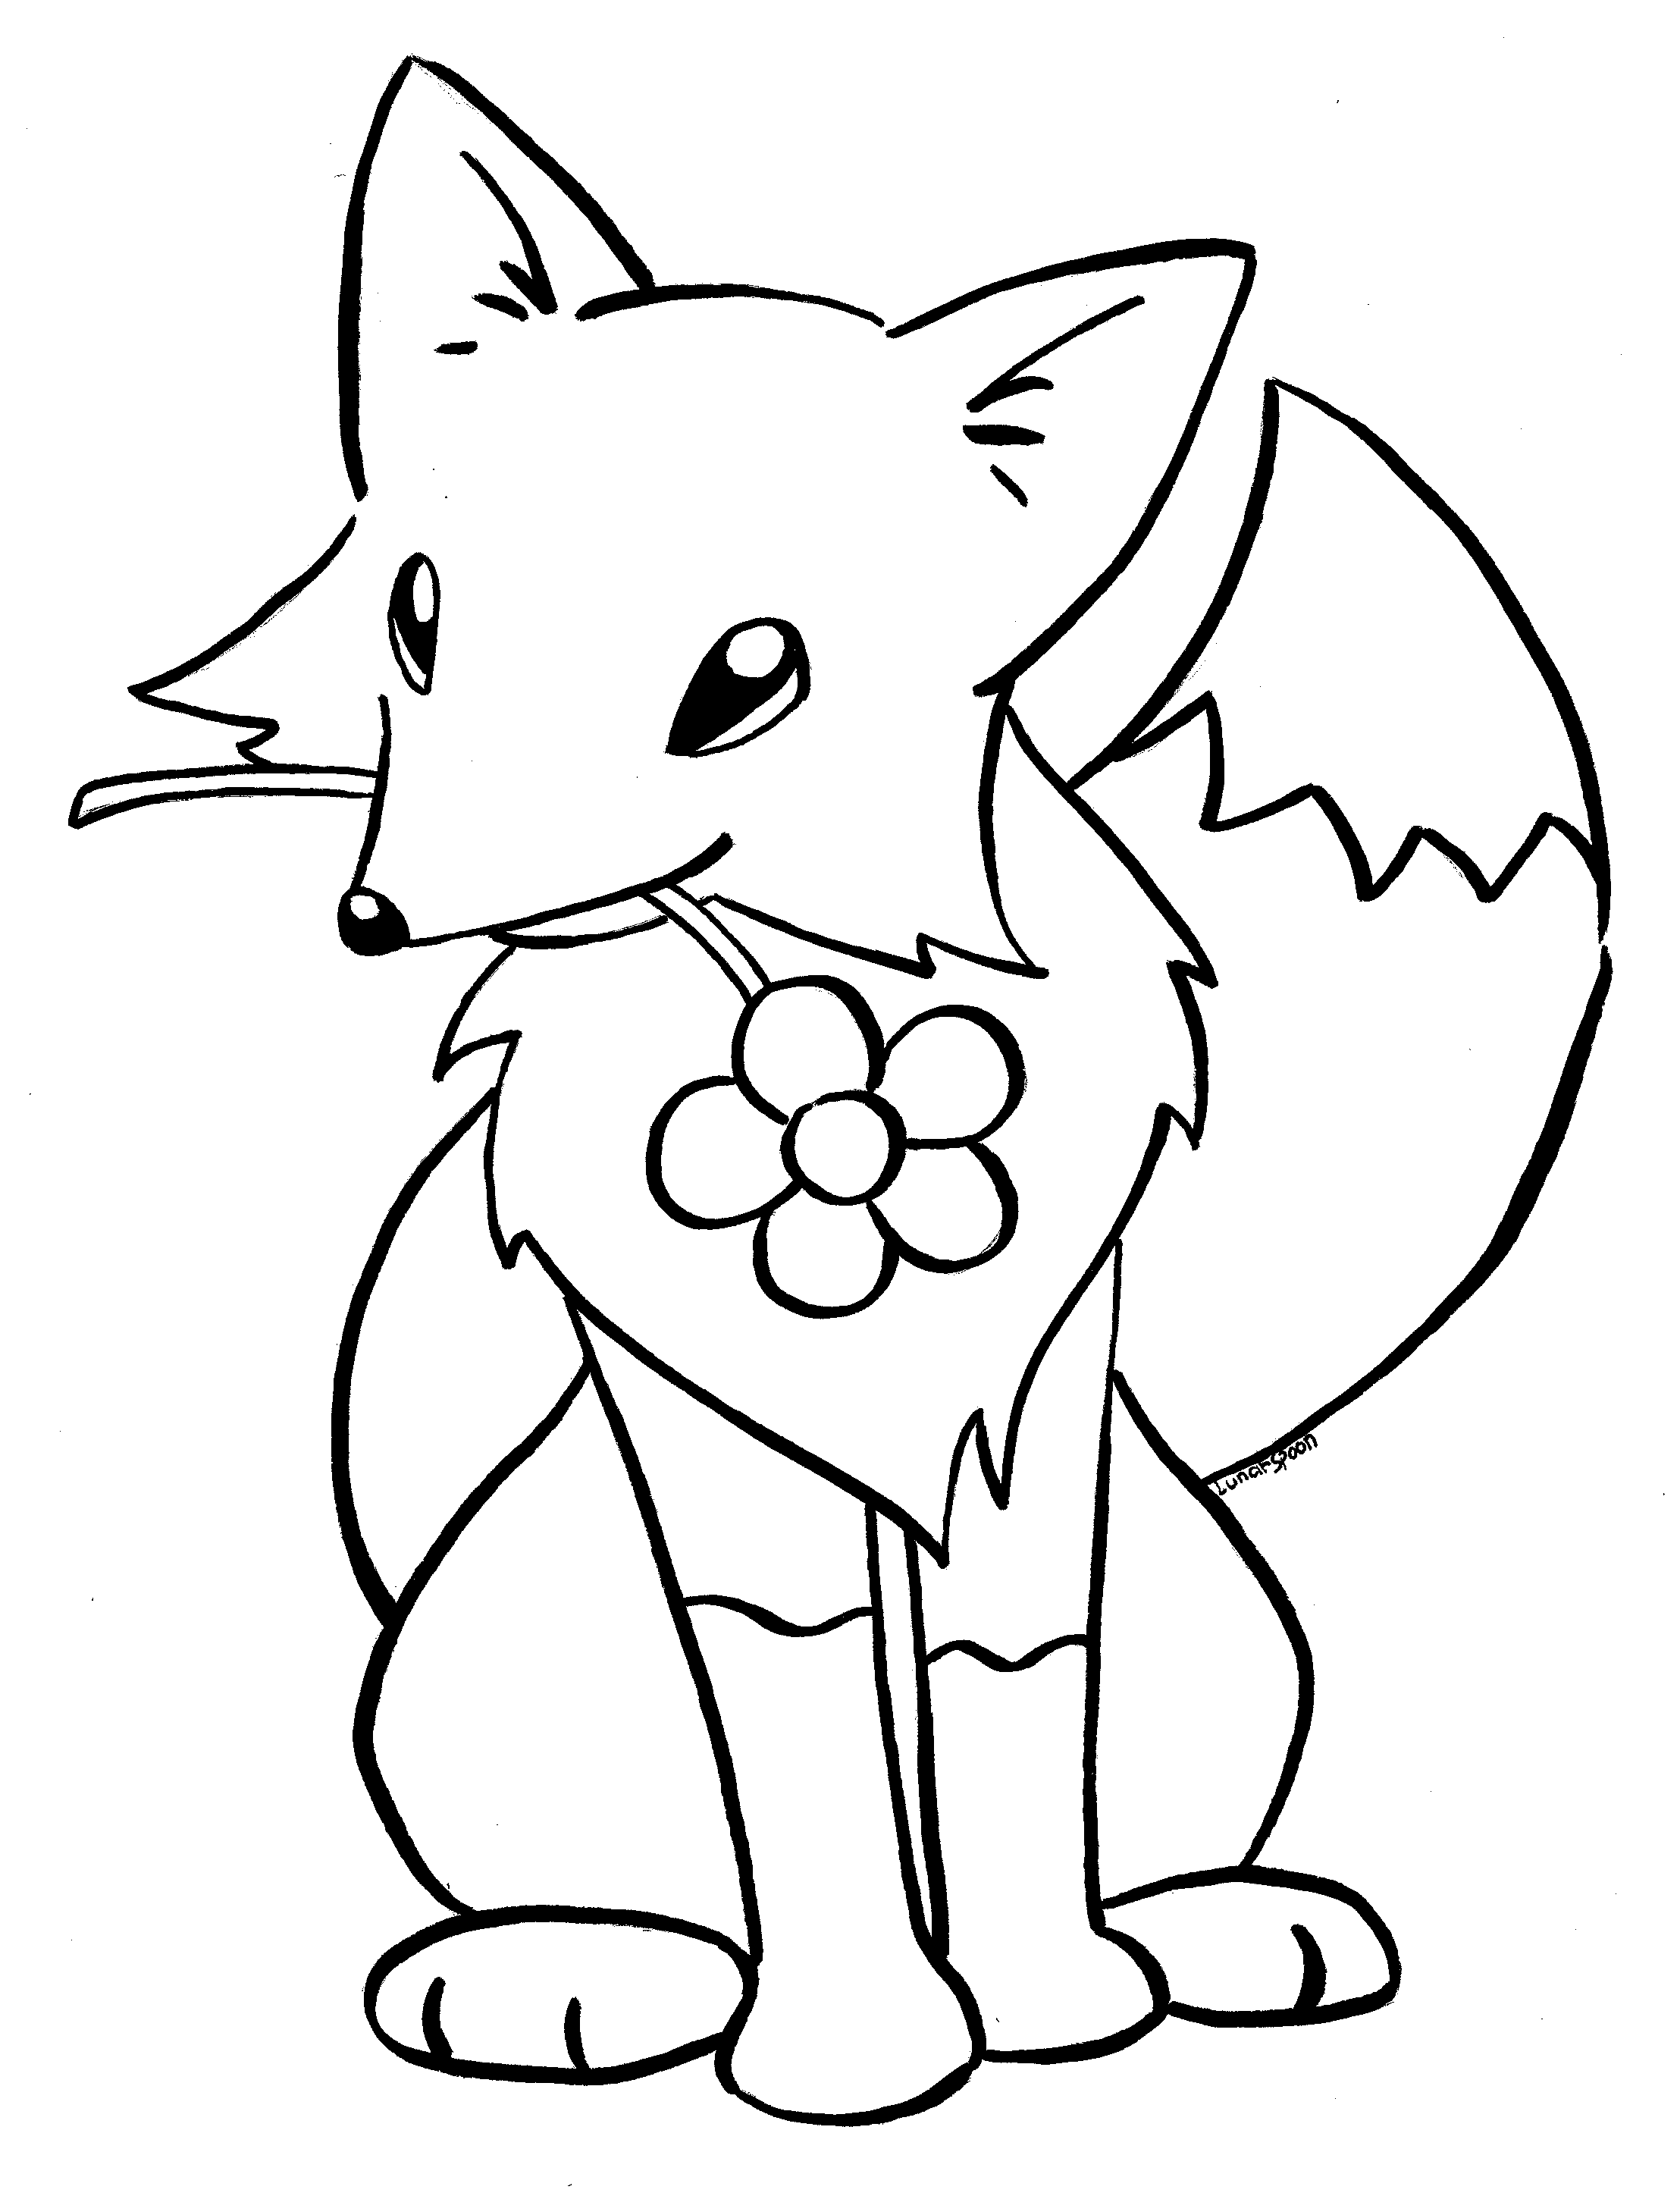 fox coloring pages free printable fox coloring pages for kids coloring pages fox